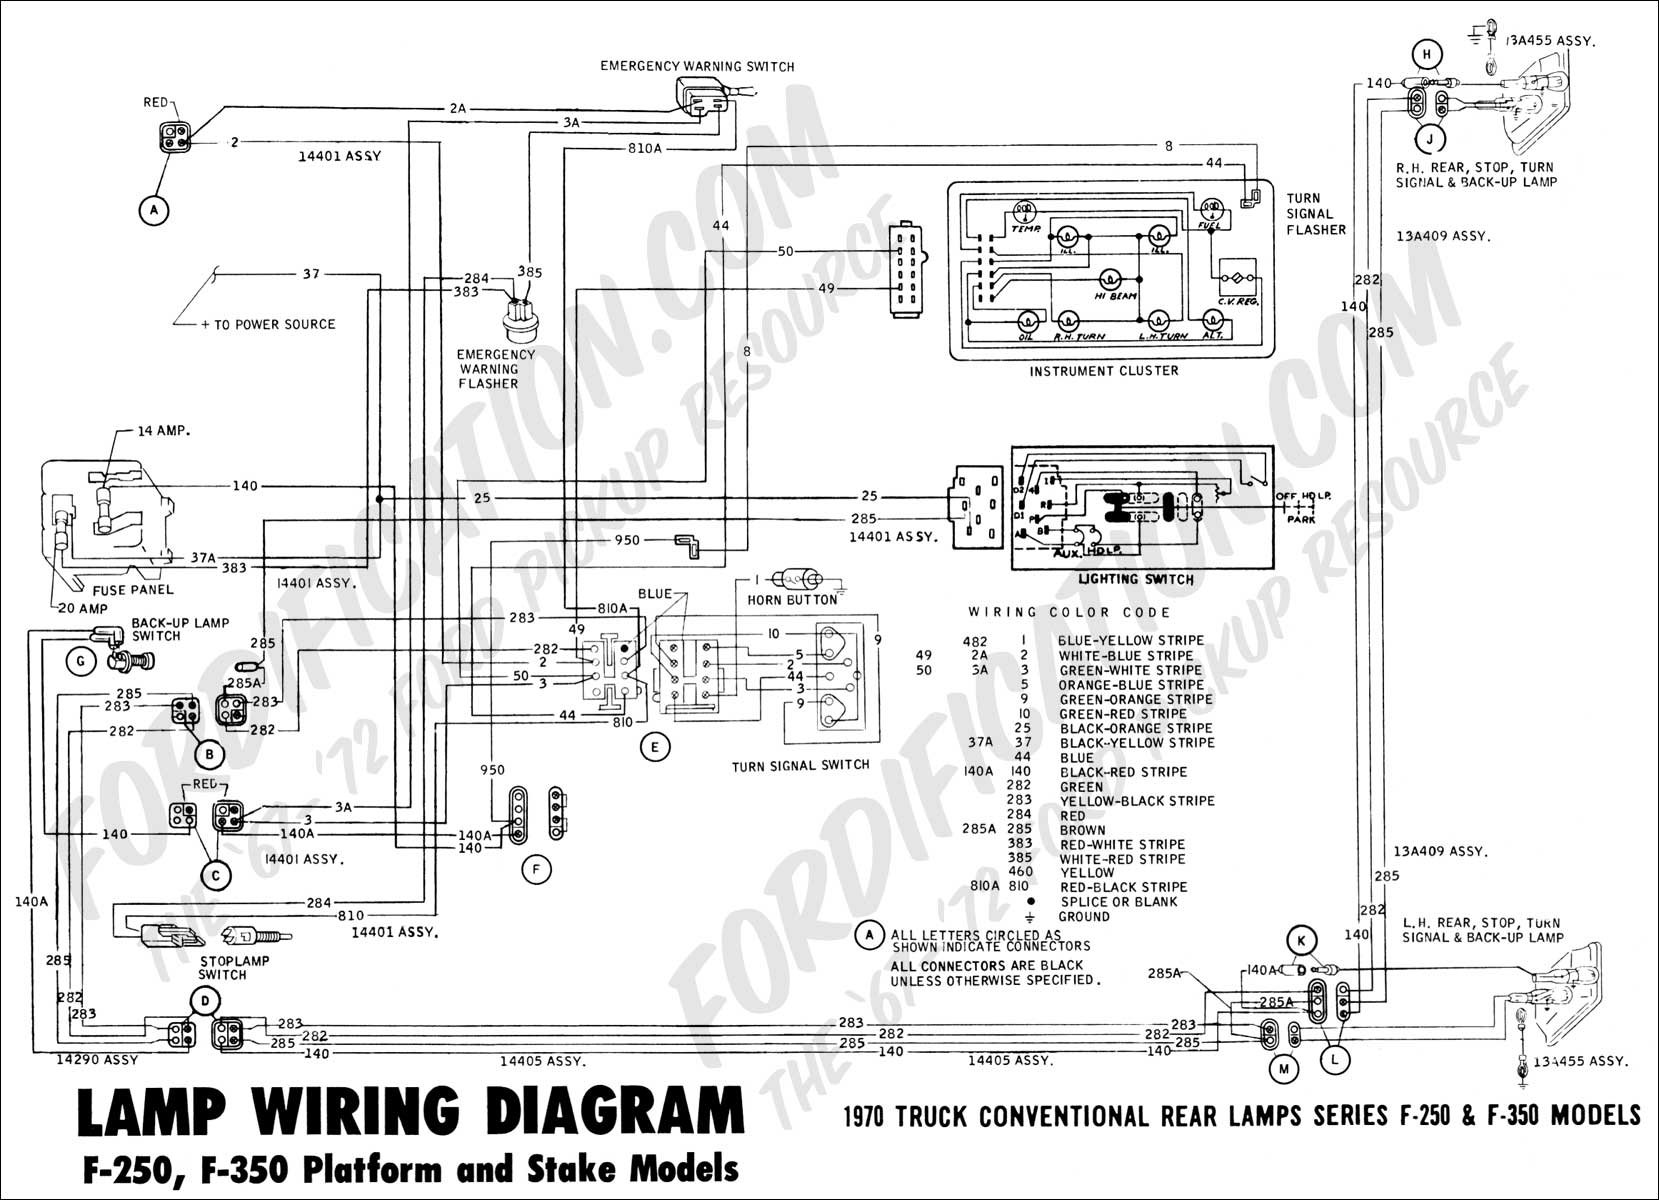 Wiring Diagram F Rearlamps on 1997 Dodge Dakota Colors